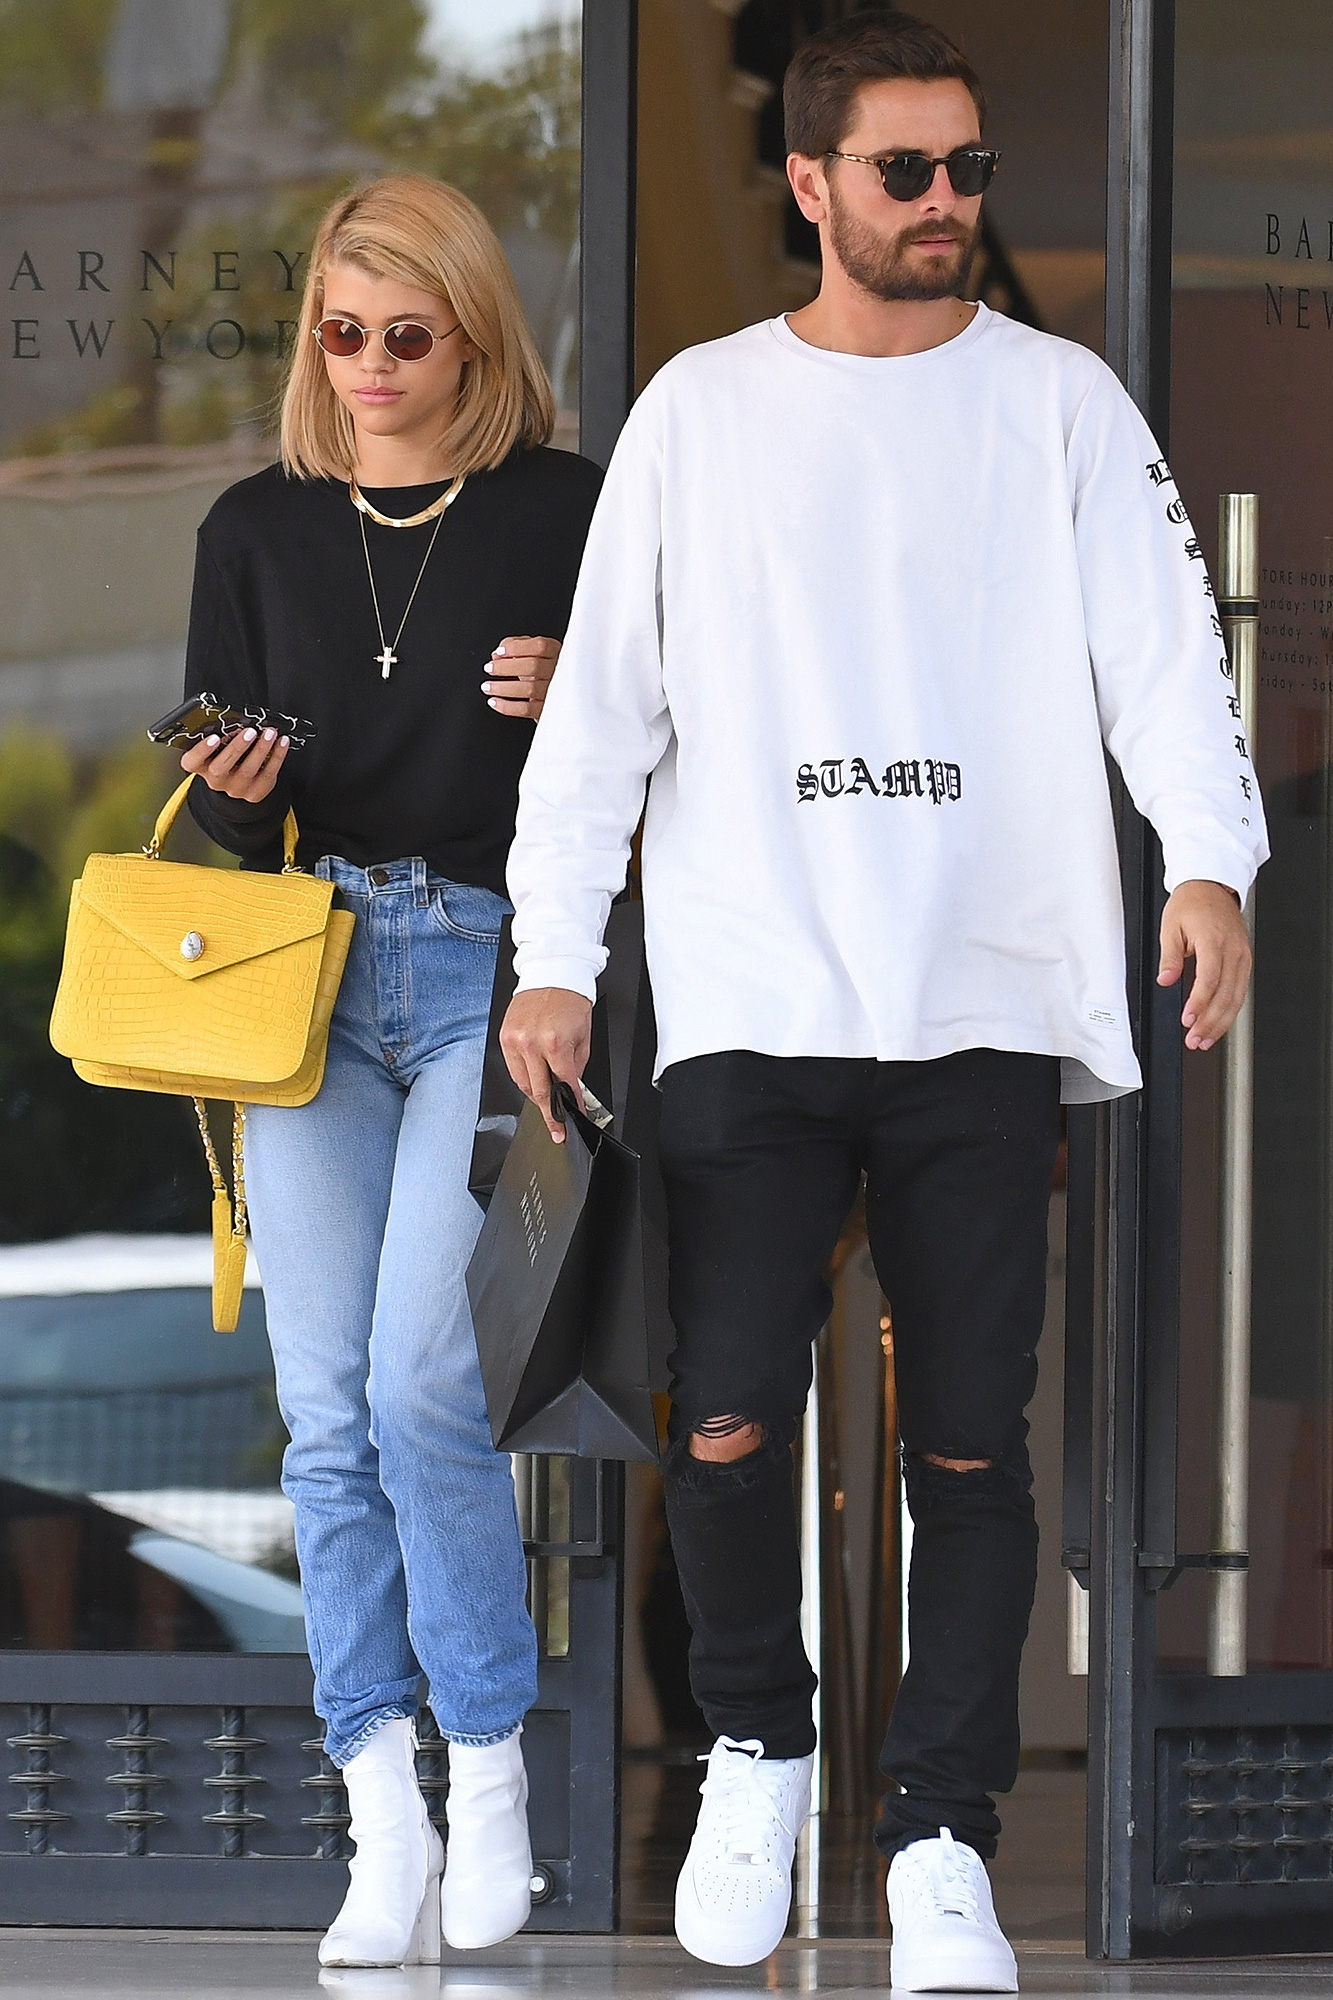 ca61a2c4 Scott Disick and Sofia Richie Fuel Romance Rumors With Coffee and Shopping  Date